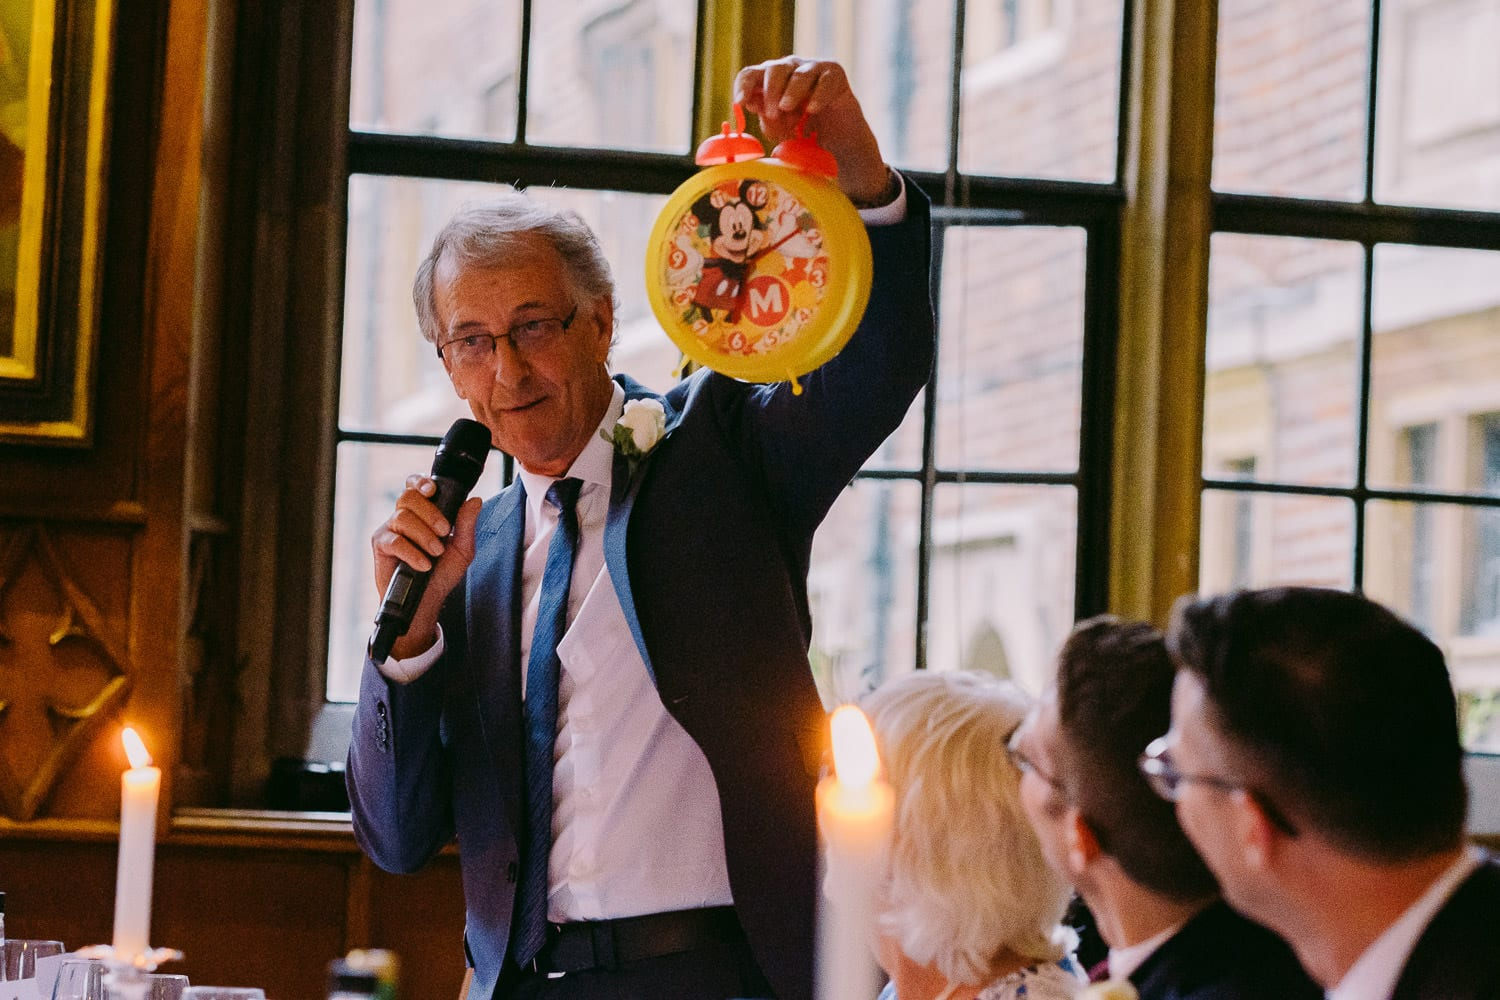 The father of the groom holds up a clock